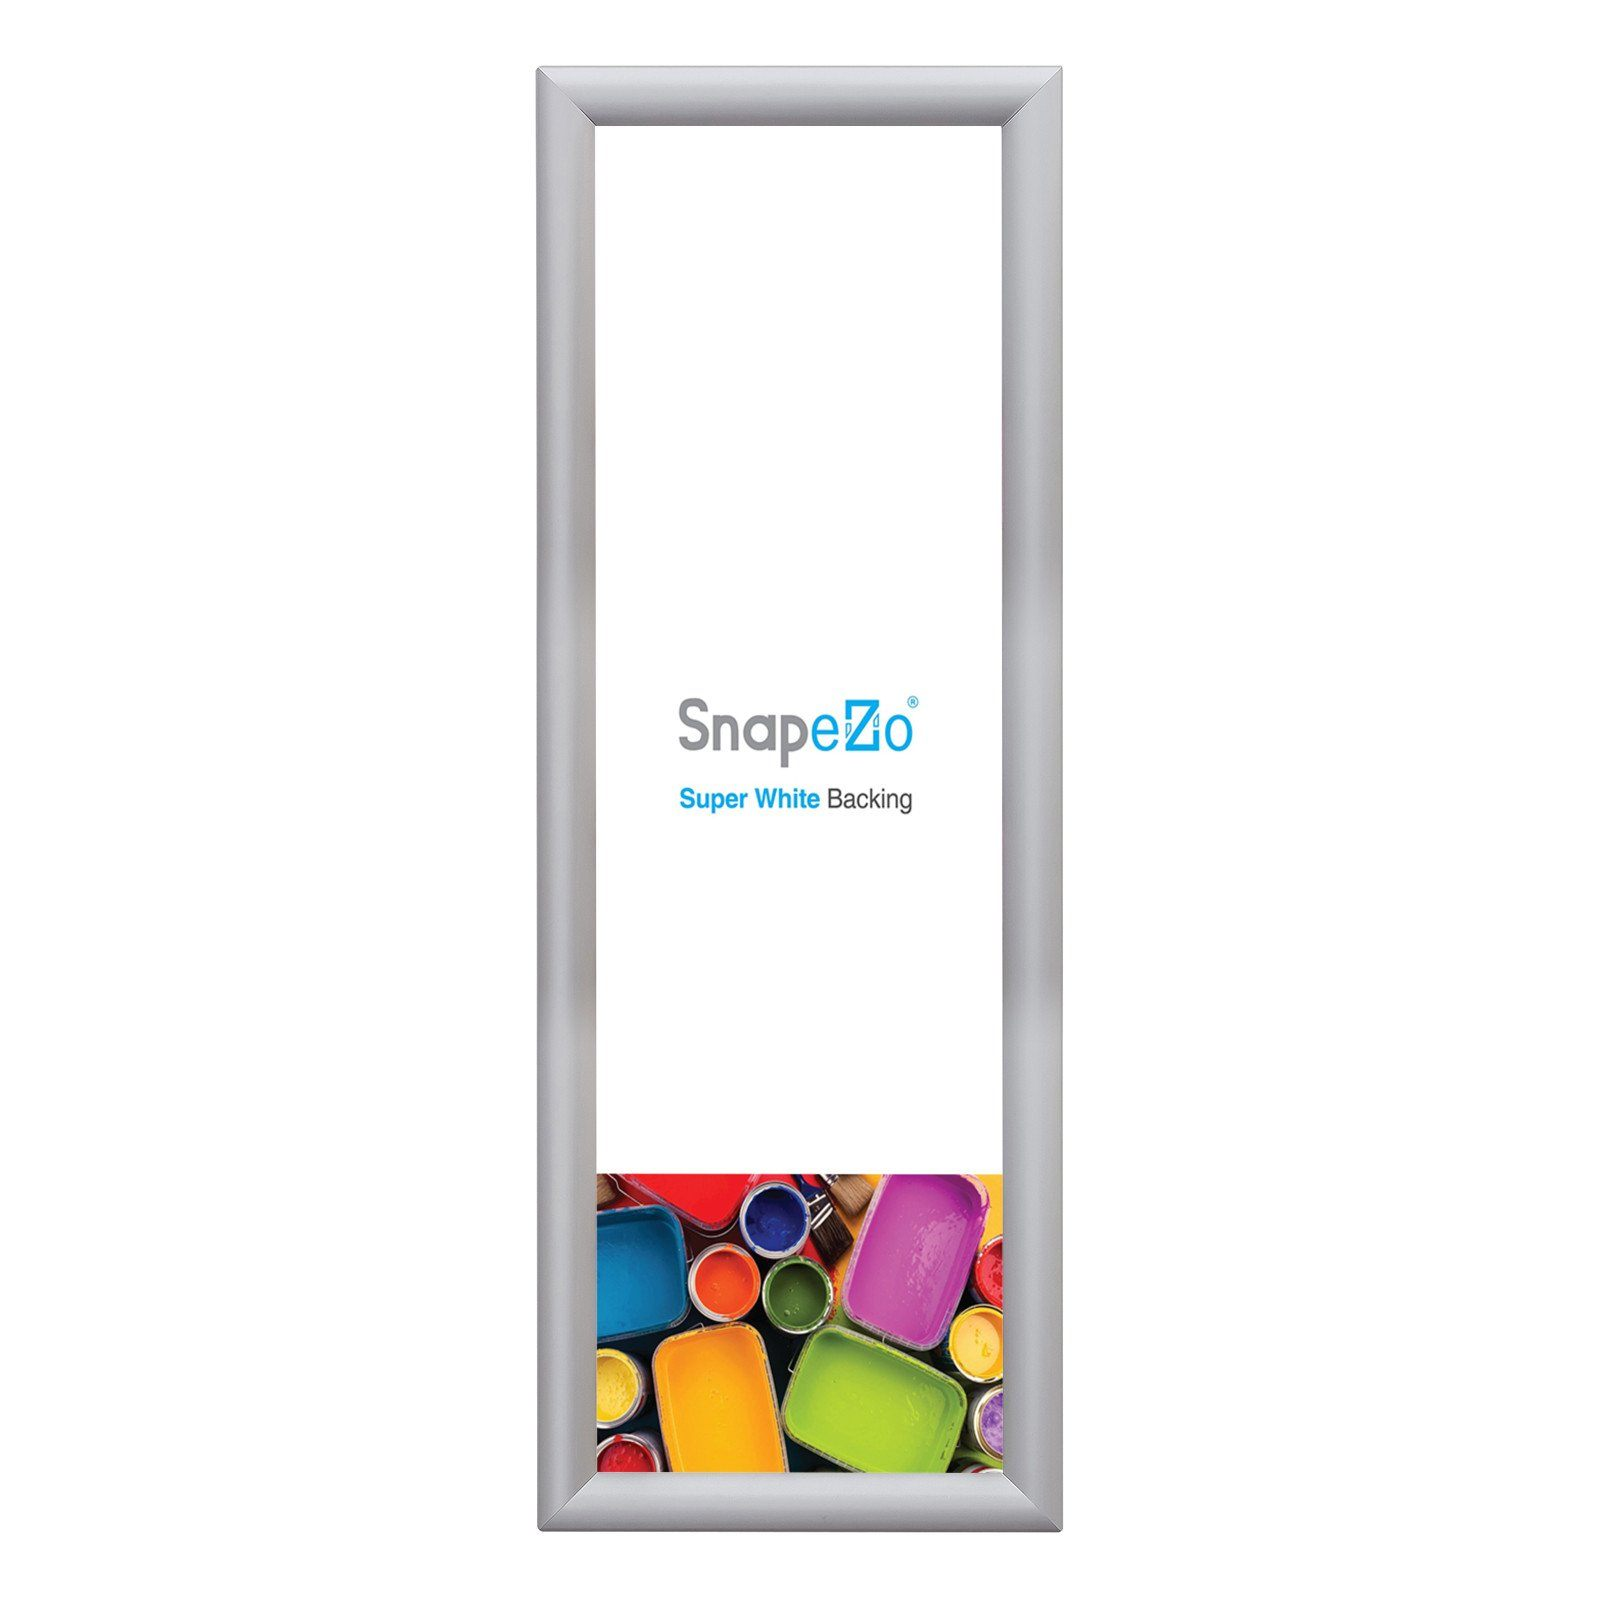 Silver snap frame photo size 8x24 - 1 inch profile